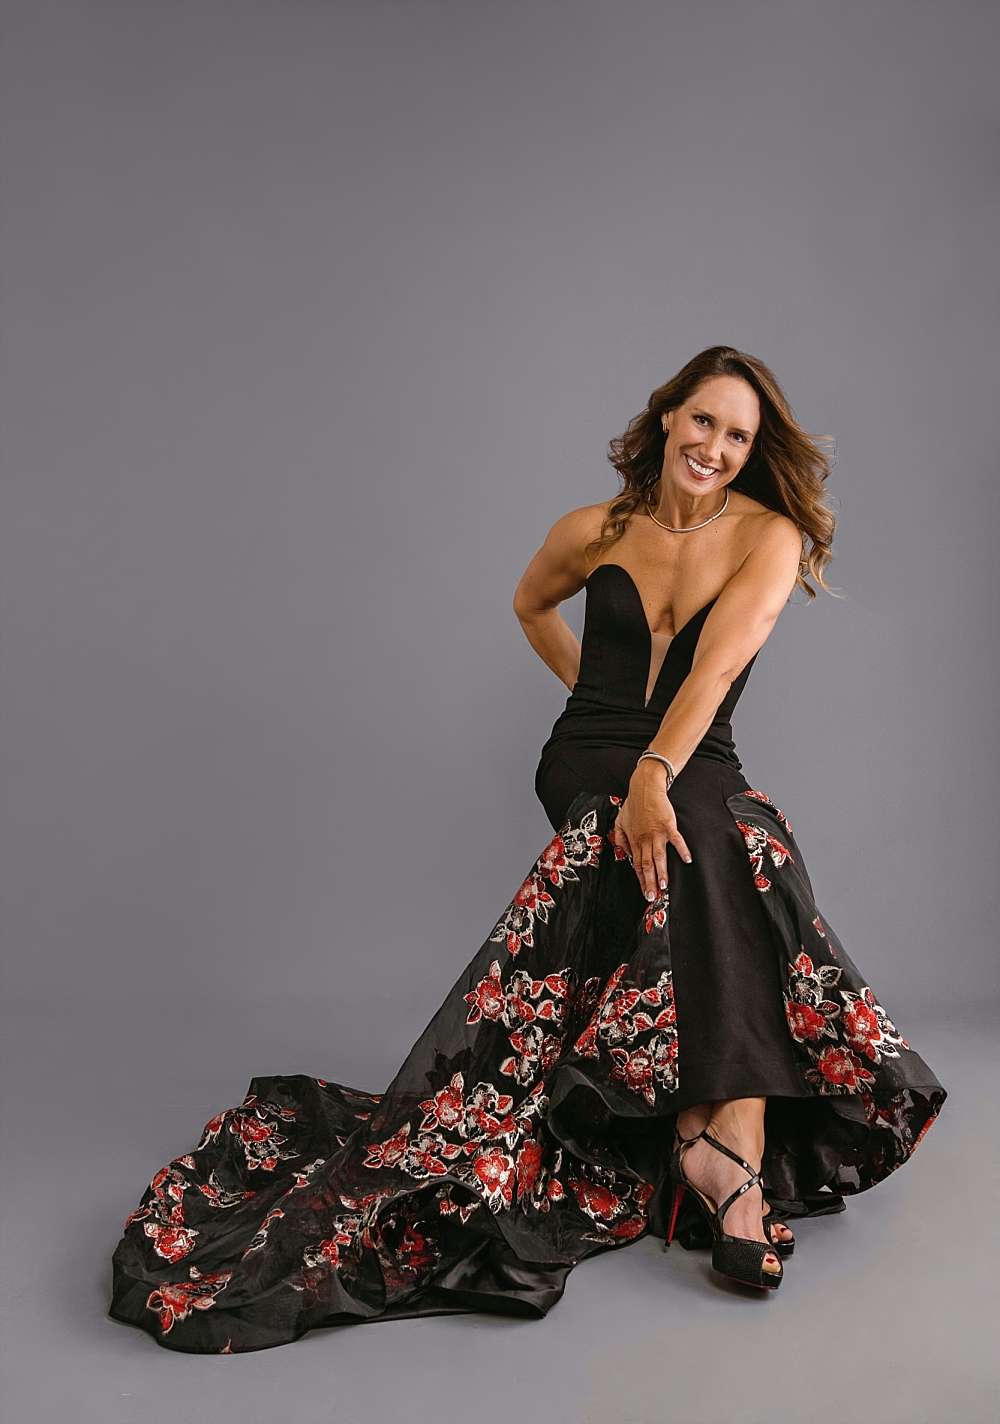 Loving this gorgeous floral gown from  Nordstrom  and swooning over the perfect  Louboutin  heel